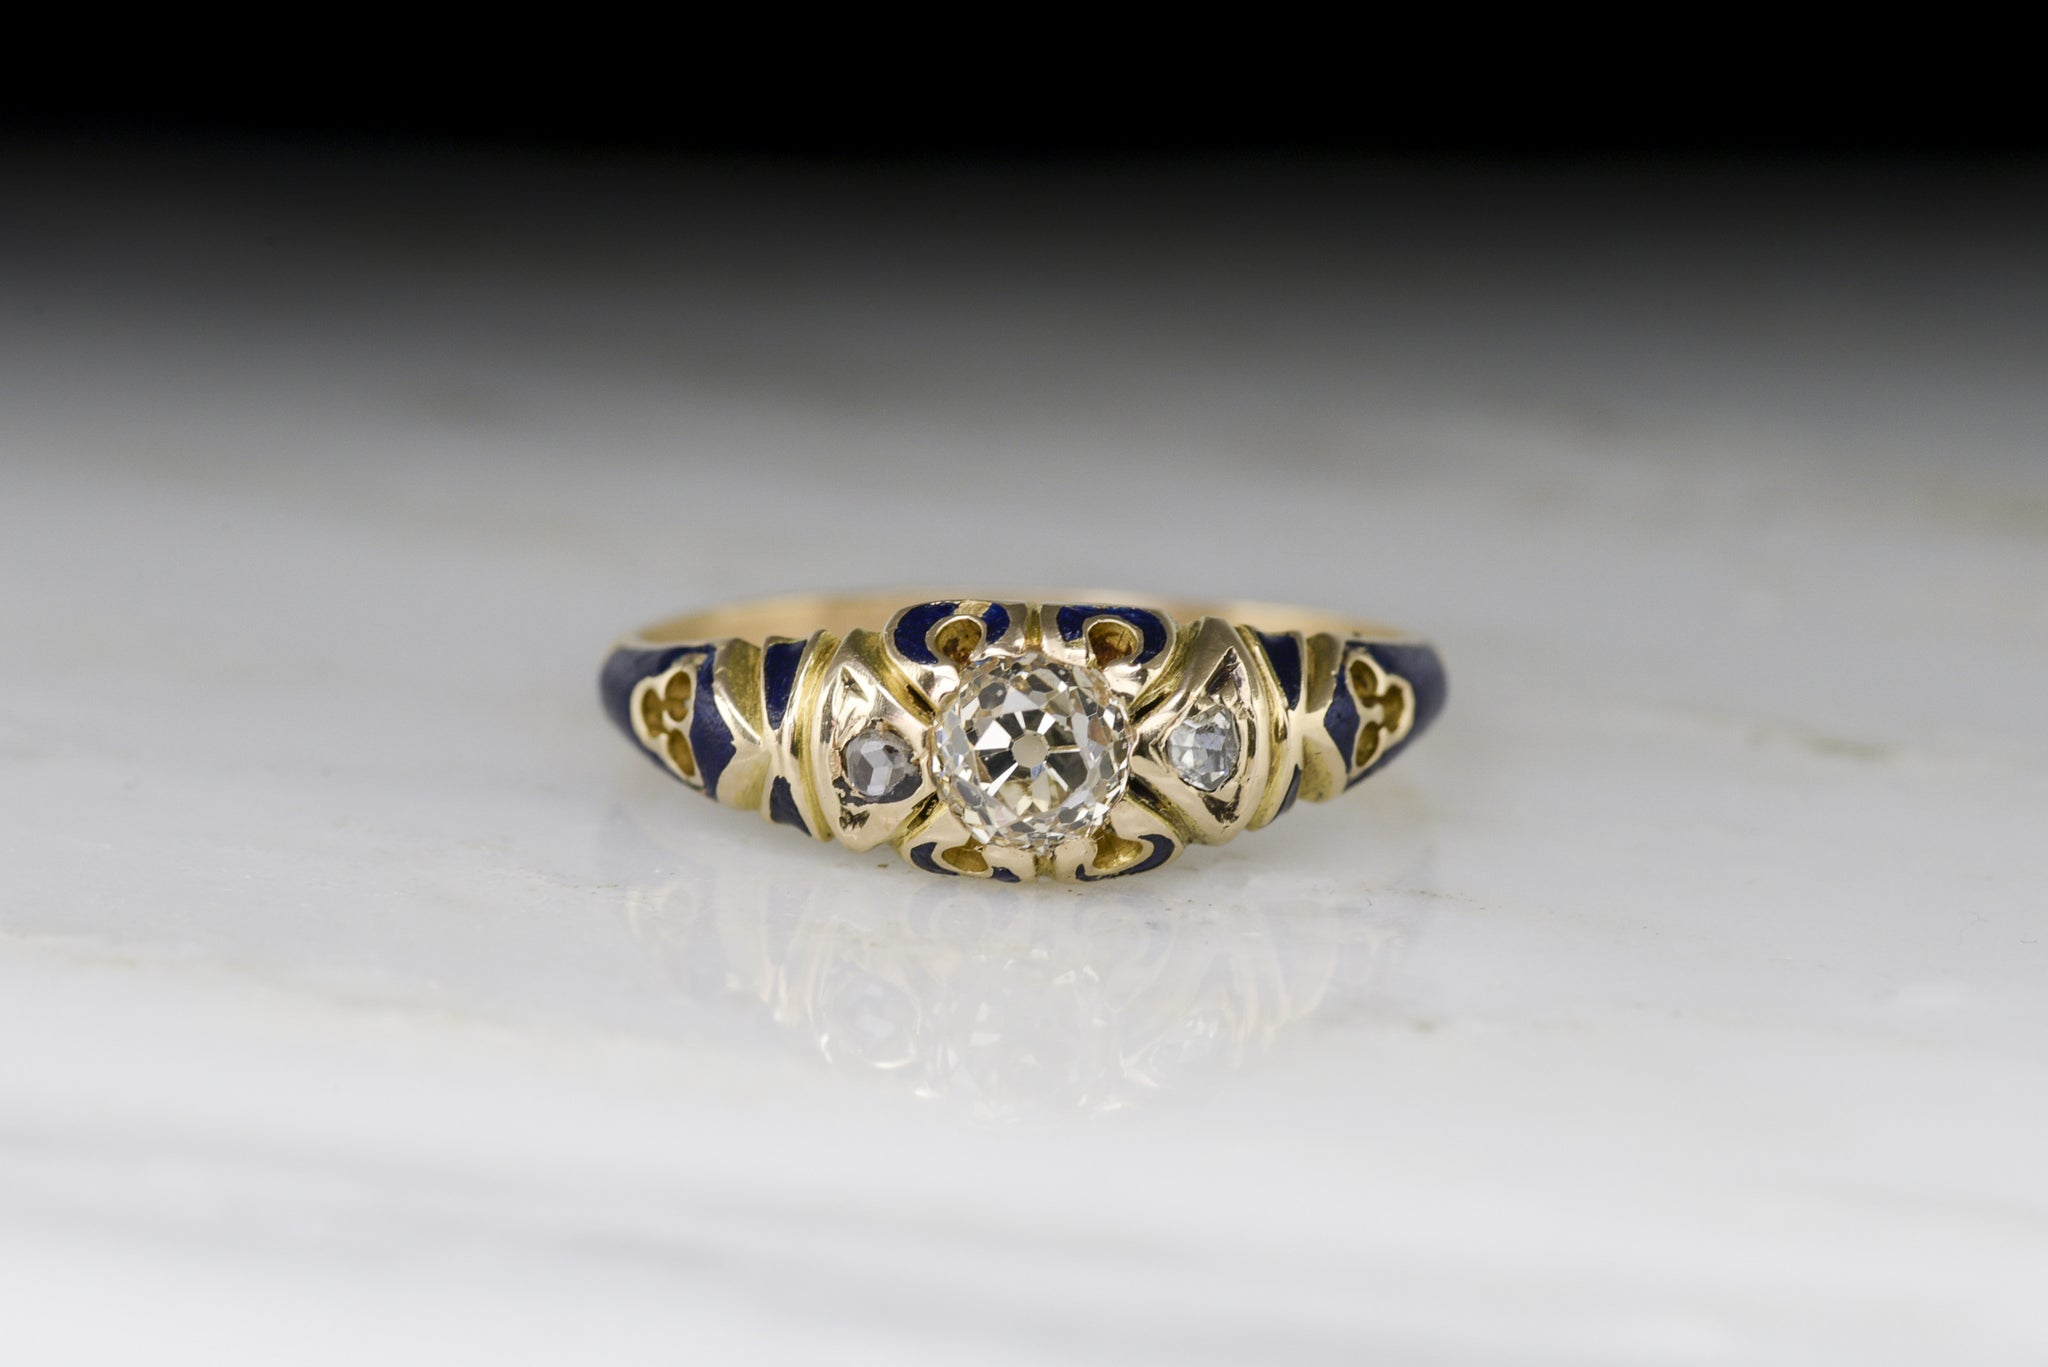 eb pin ring pinterest engagement diamond rings mine old jewelry cut